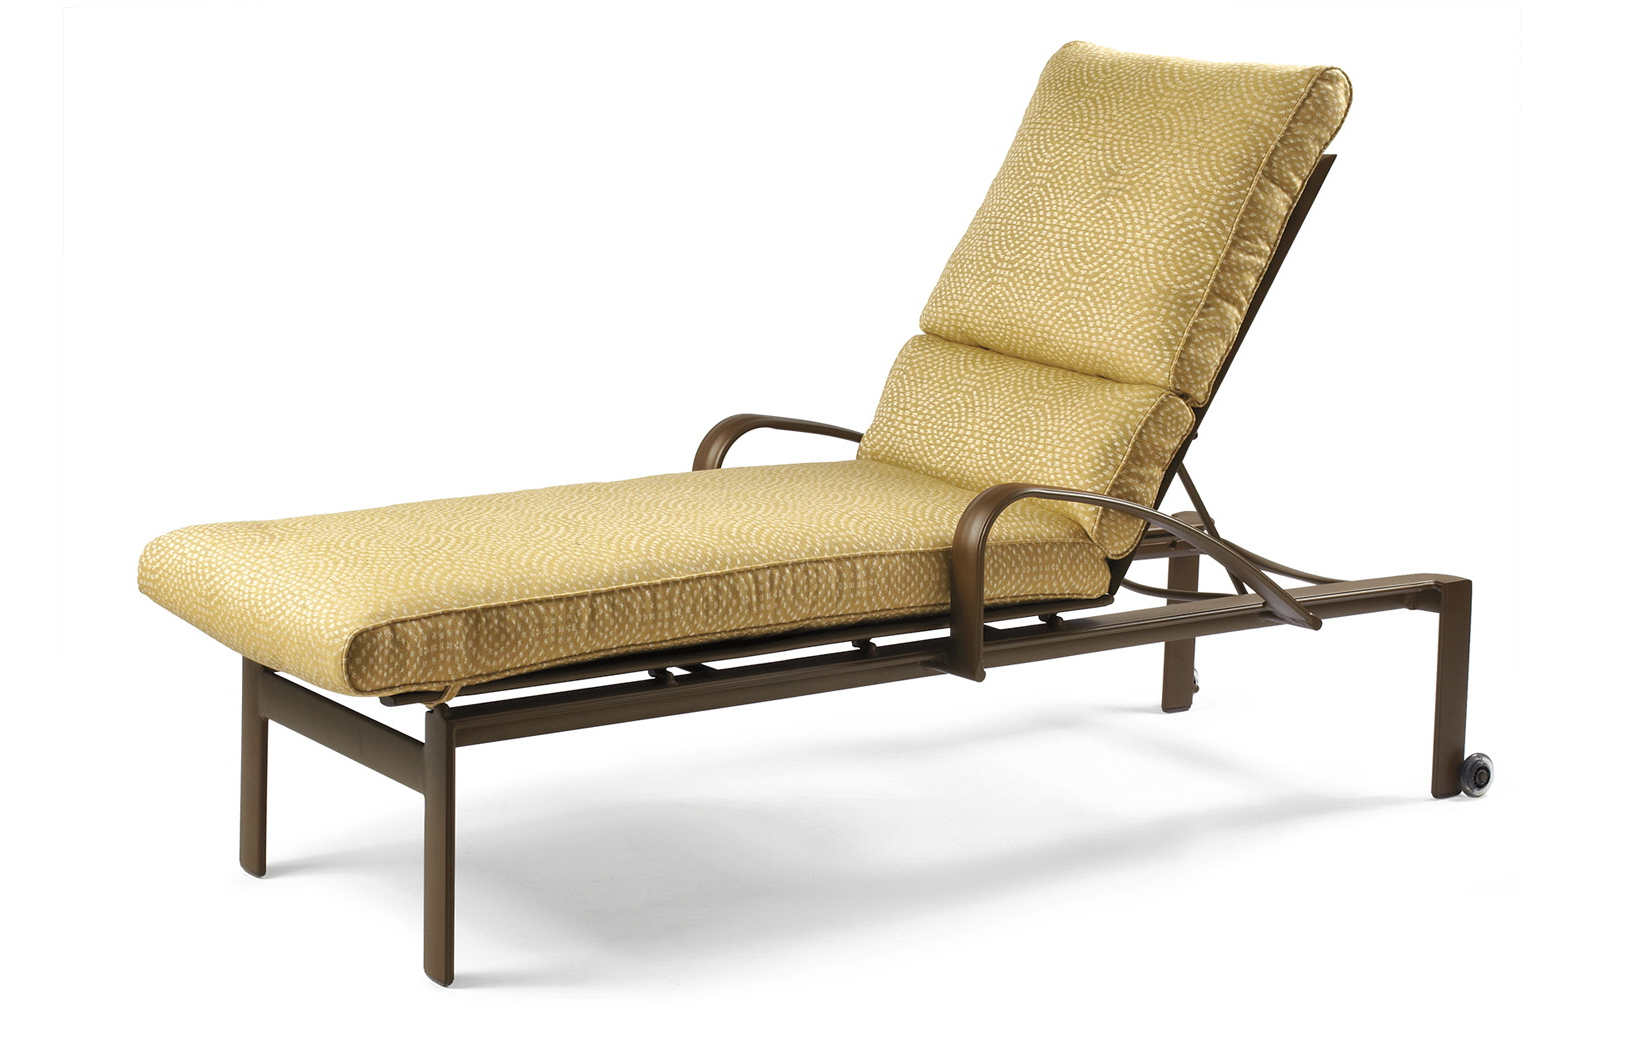 2019 Chaise Lounge Chairs In Bronze With Oatmeal Cushions Pertaining To Belvedere Cushion Outdoor Chaise Lounge With Skate Wheels (View 24 of 25)